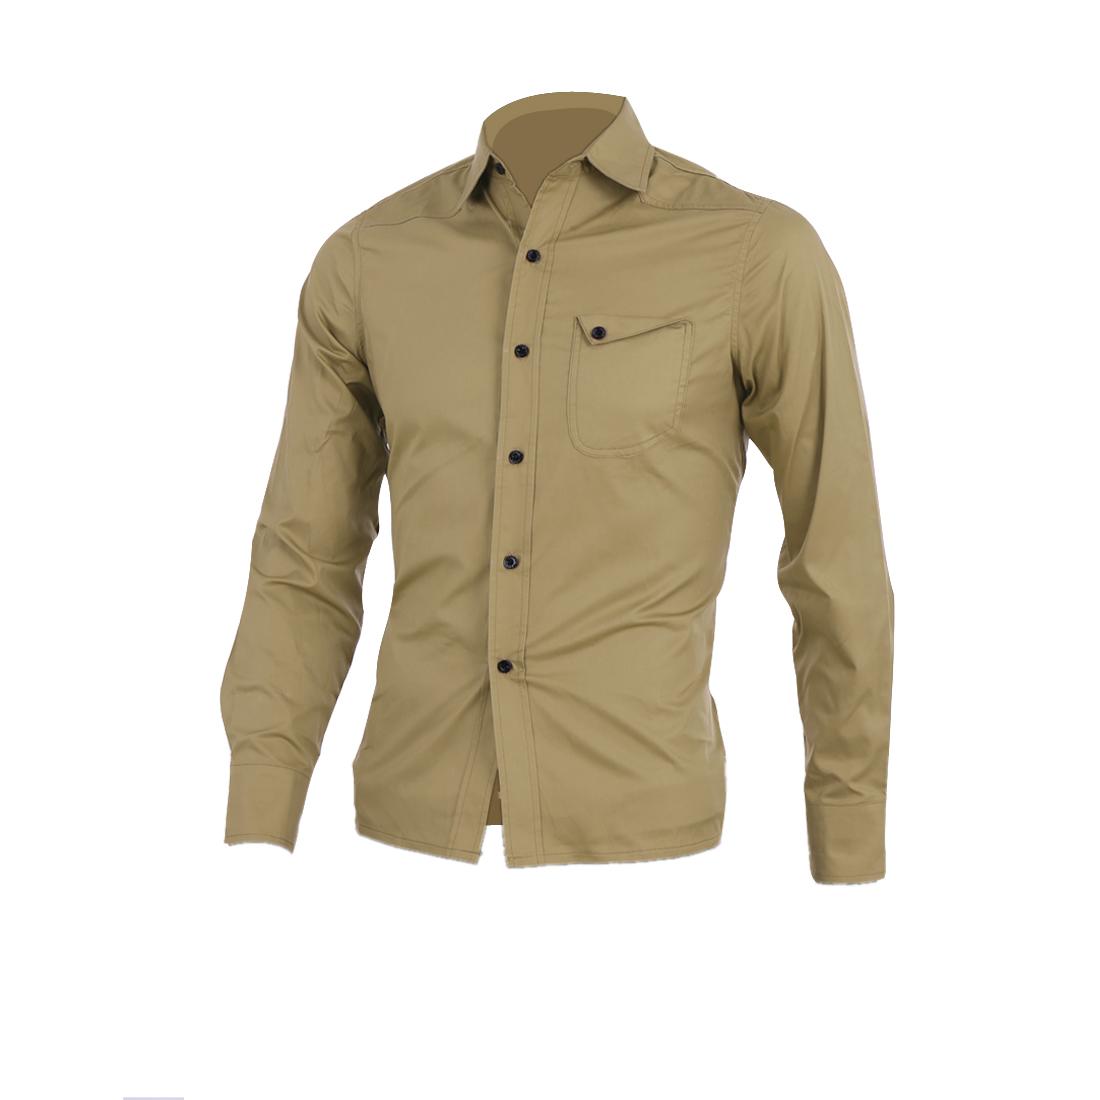 Men Button Front Point Collar Long Sleeve Round Hem Casual Shirt S Khaki